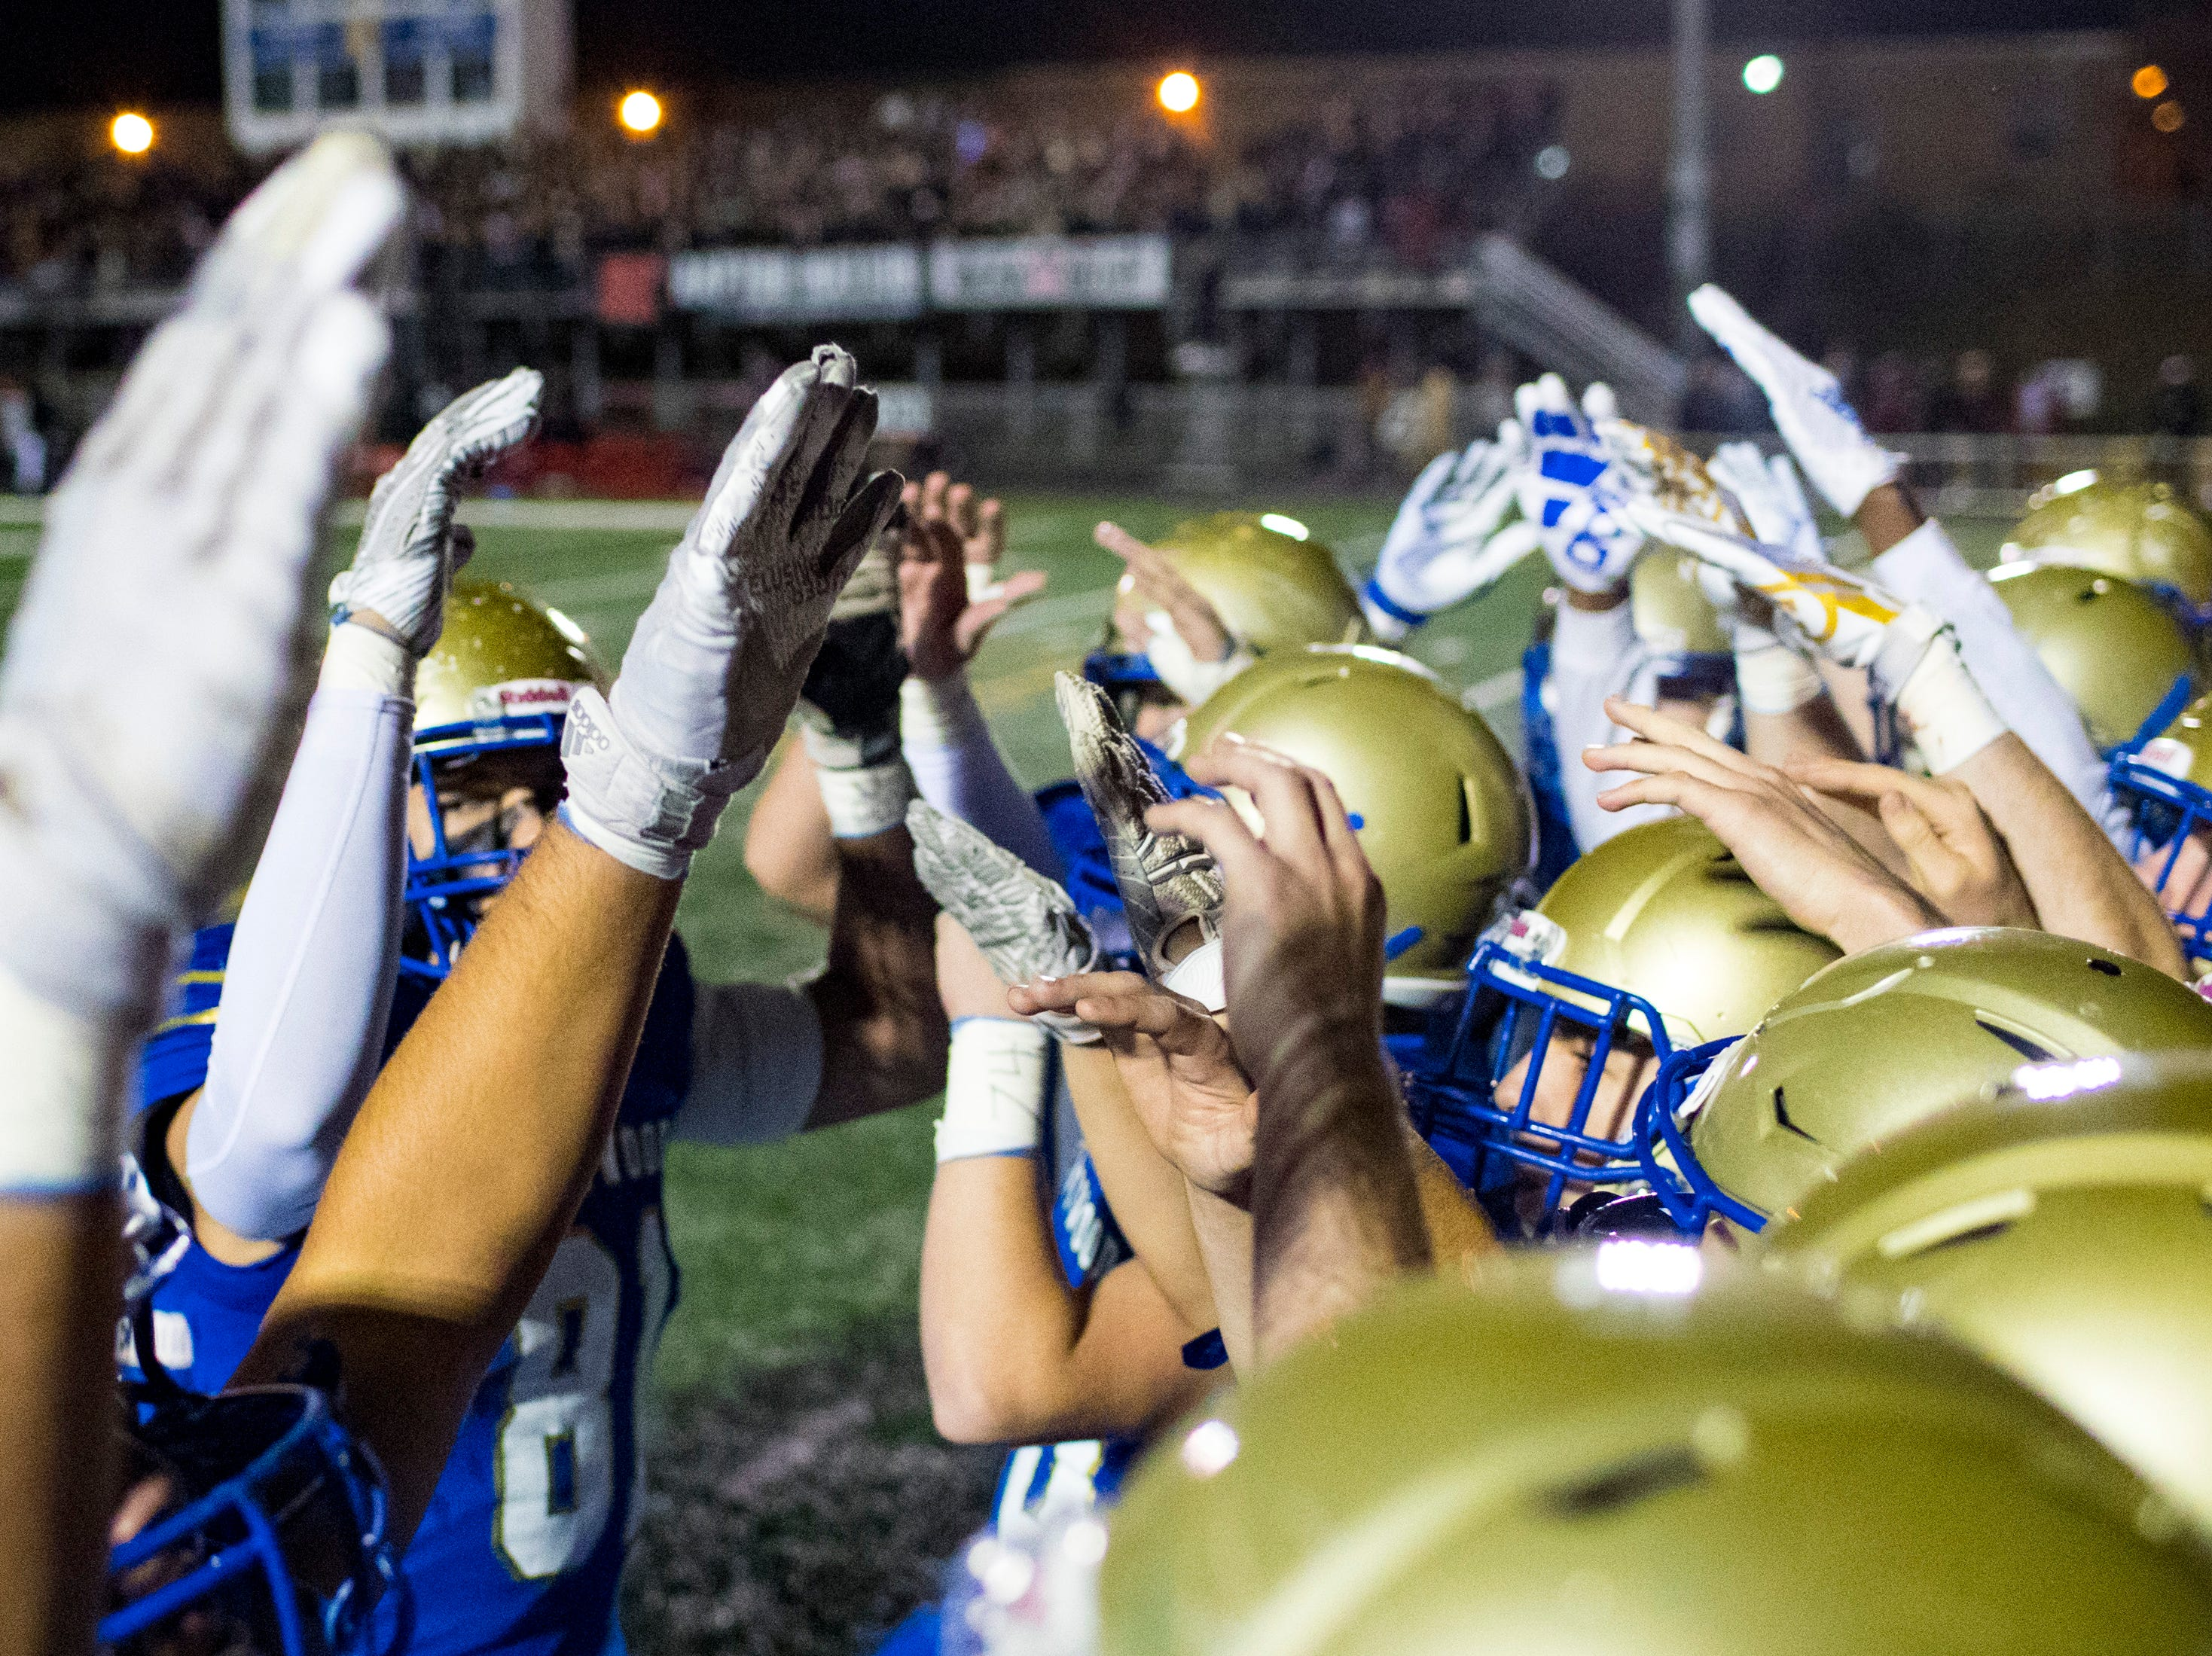 Brentwood's players get hyped up before taking the field for Brentwood's game against Ravenwood at Brentwood High School in Brentwood on Friday, Nov. 16, 2018.